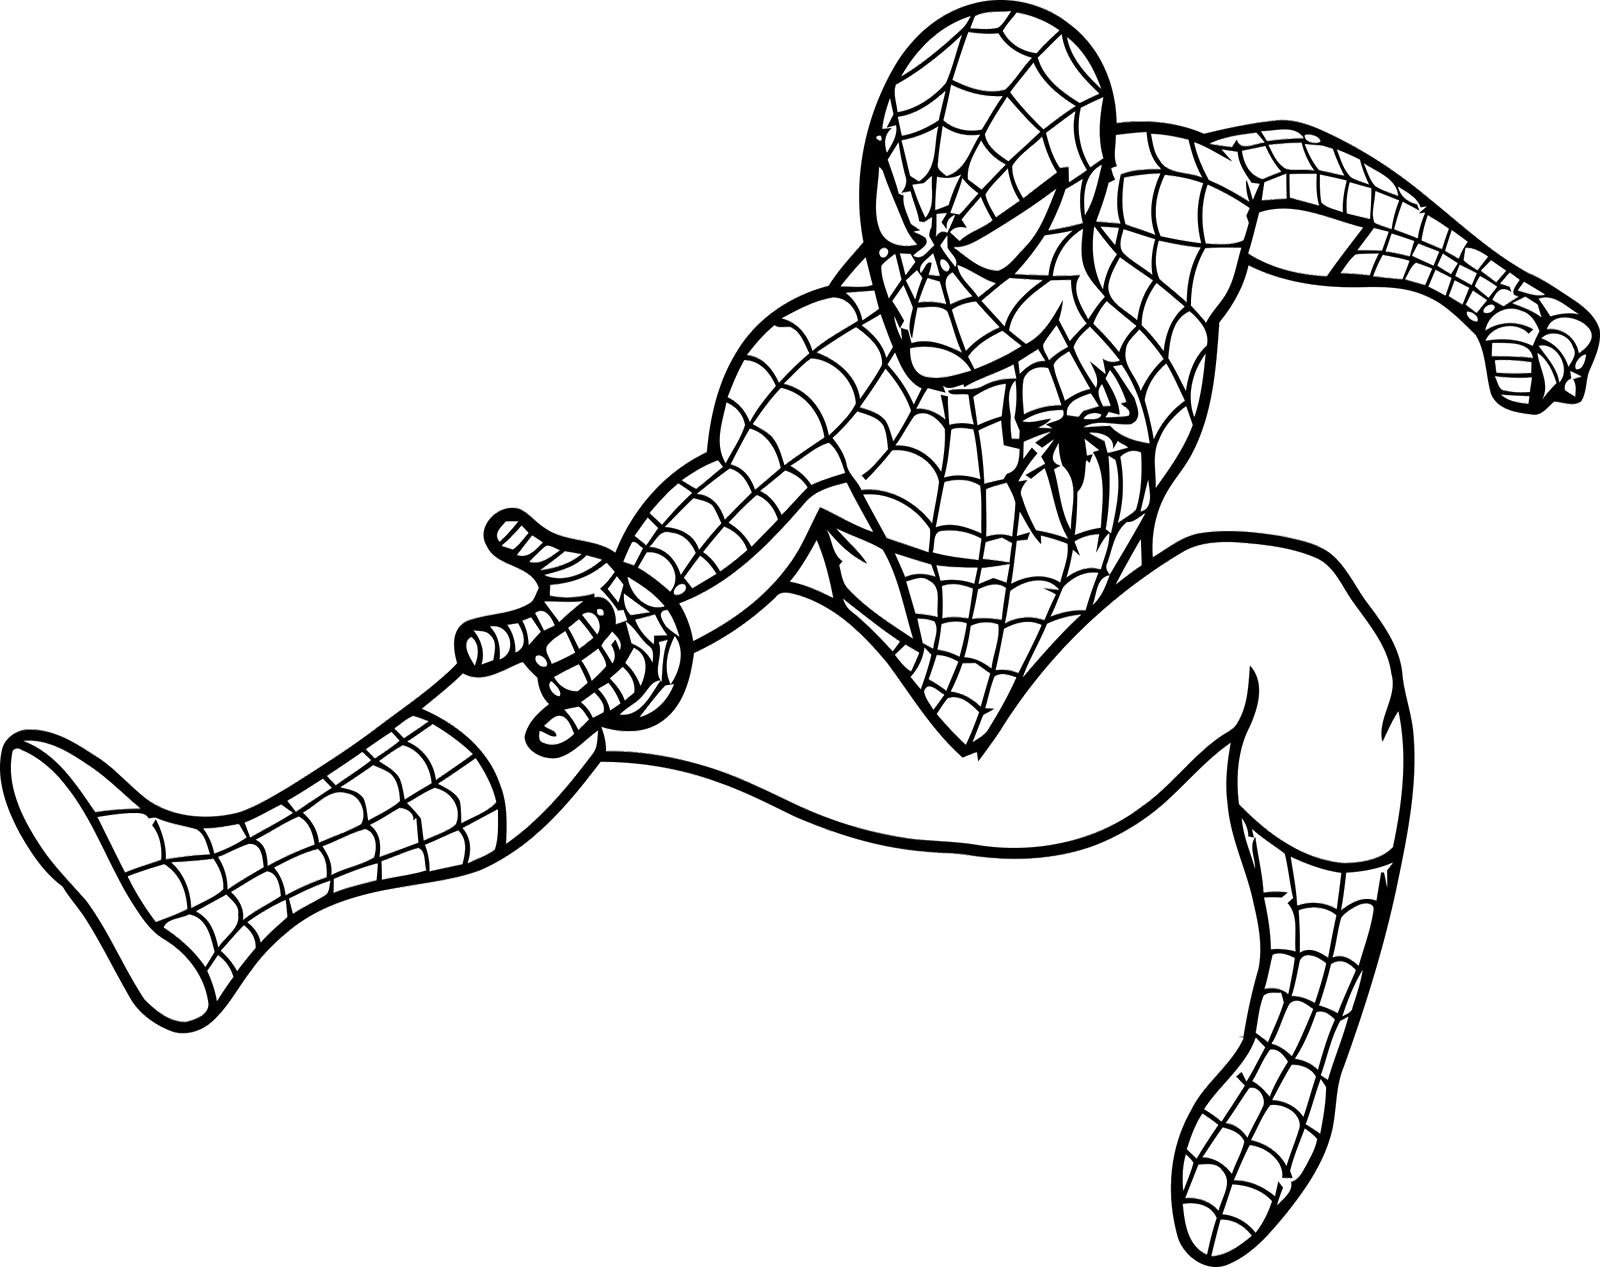 coloring sheets you can print free coloring pages and print these you can print print can sheets coloring you